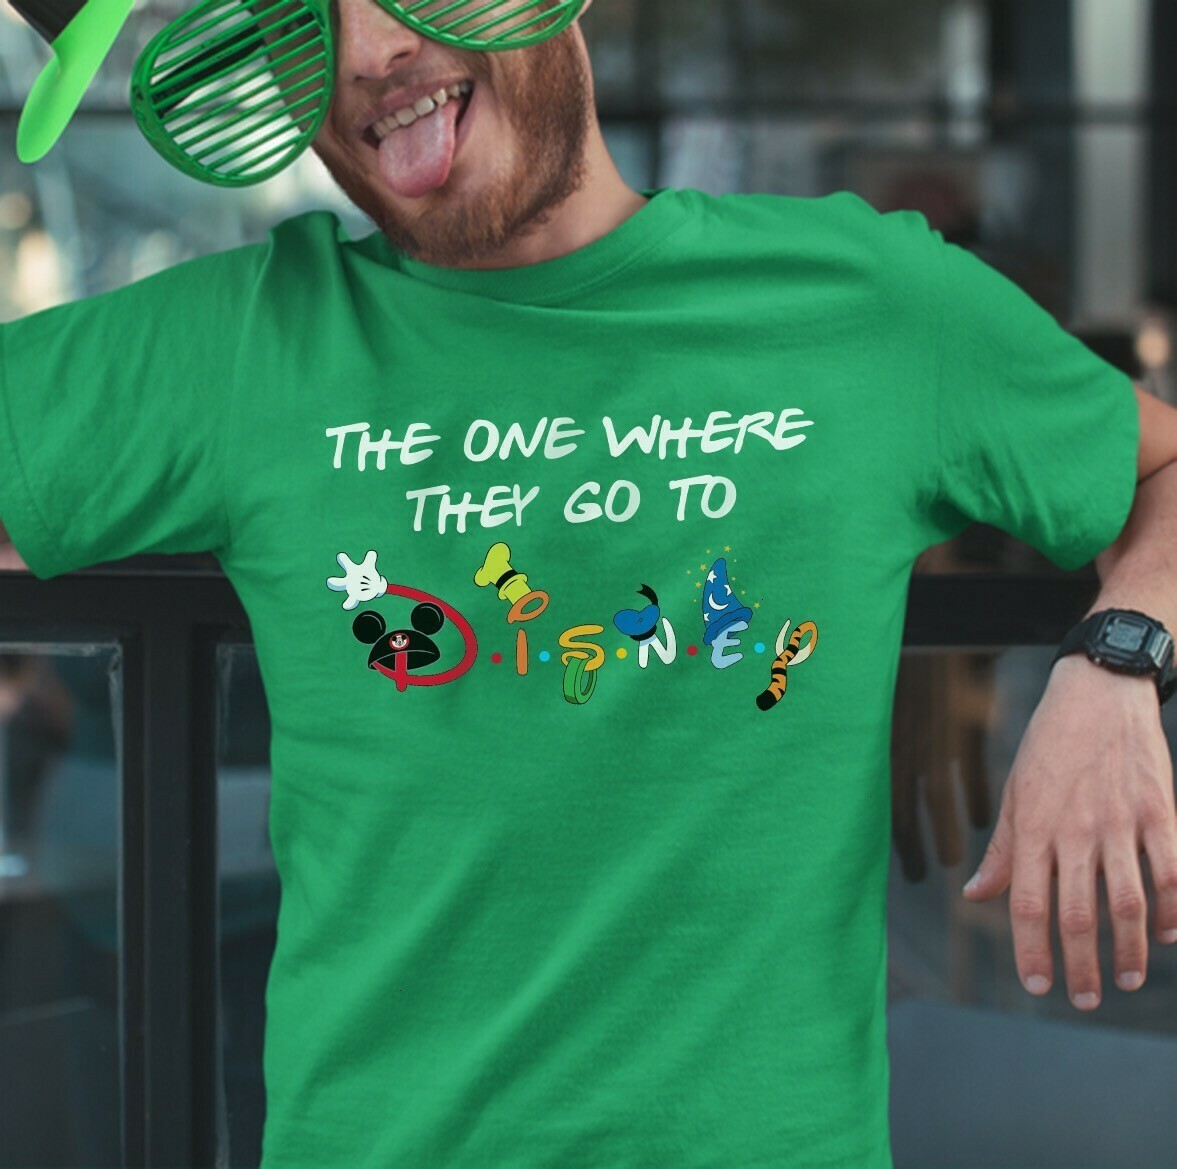 The one where they go to Disney Happy St. Patrick's Day Friends Inspired Disney World Family Trip Group Matching Friends  Unisex T-Shirt Hoodie Sweatshirt Sweater Plus Size for Ladies Women Men Kids